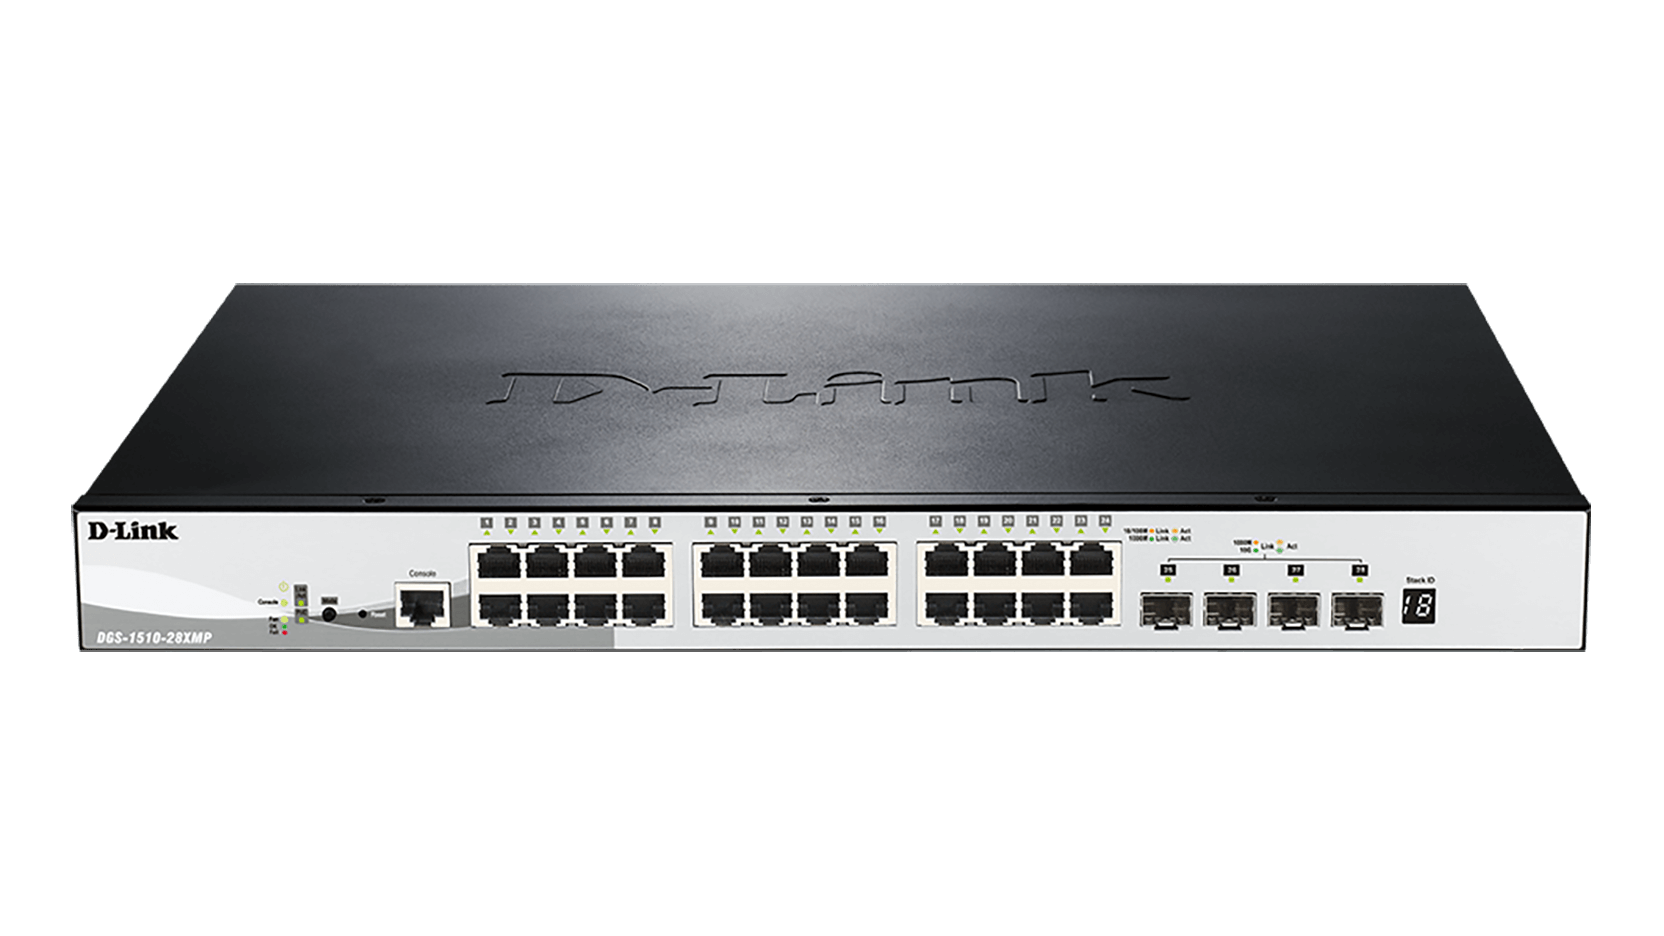 D-Link 28-Port Gigabit Stackable POE (max. 370W) Smart Switch incl. 4 10G SFP+